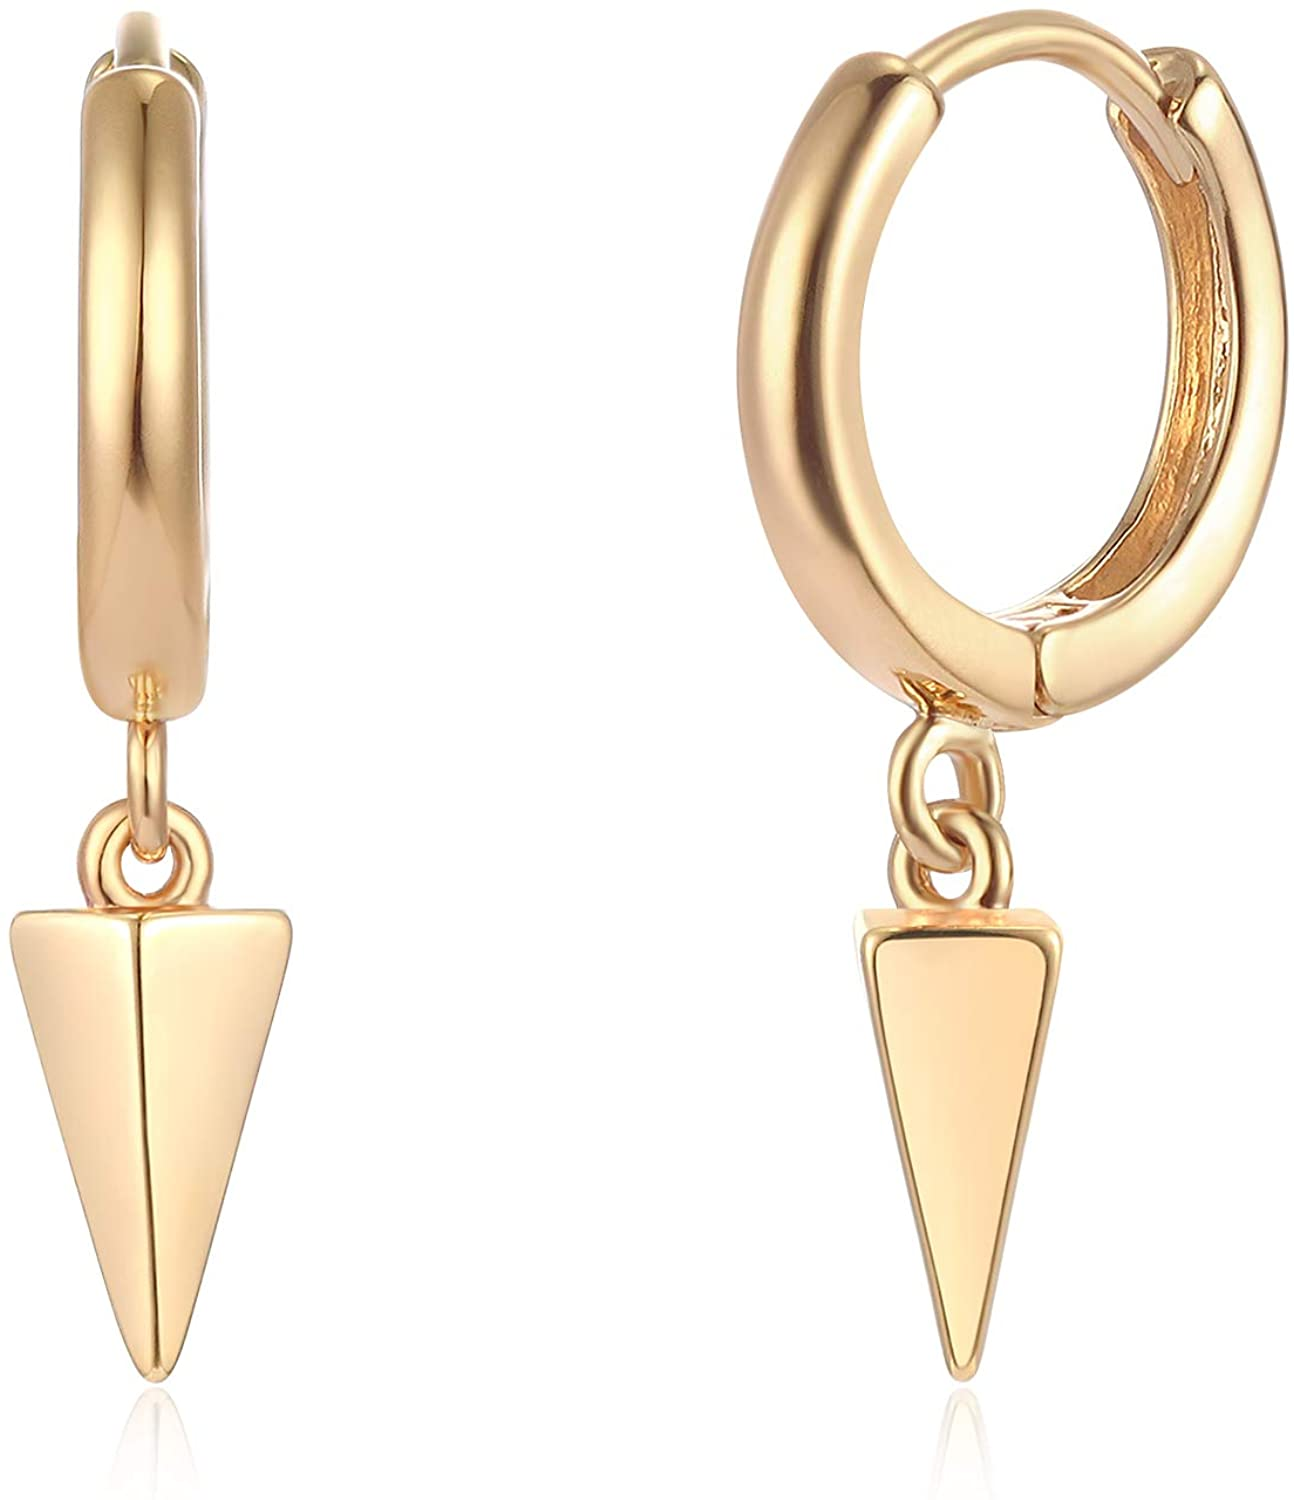 Mevecco Gold Dainty Dangle Hoop Earrings for Women 14K Gold Plated Delicate cute Geometric Triangle Cone Dangle Earrings